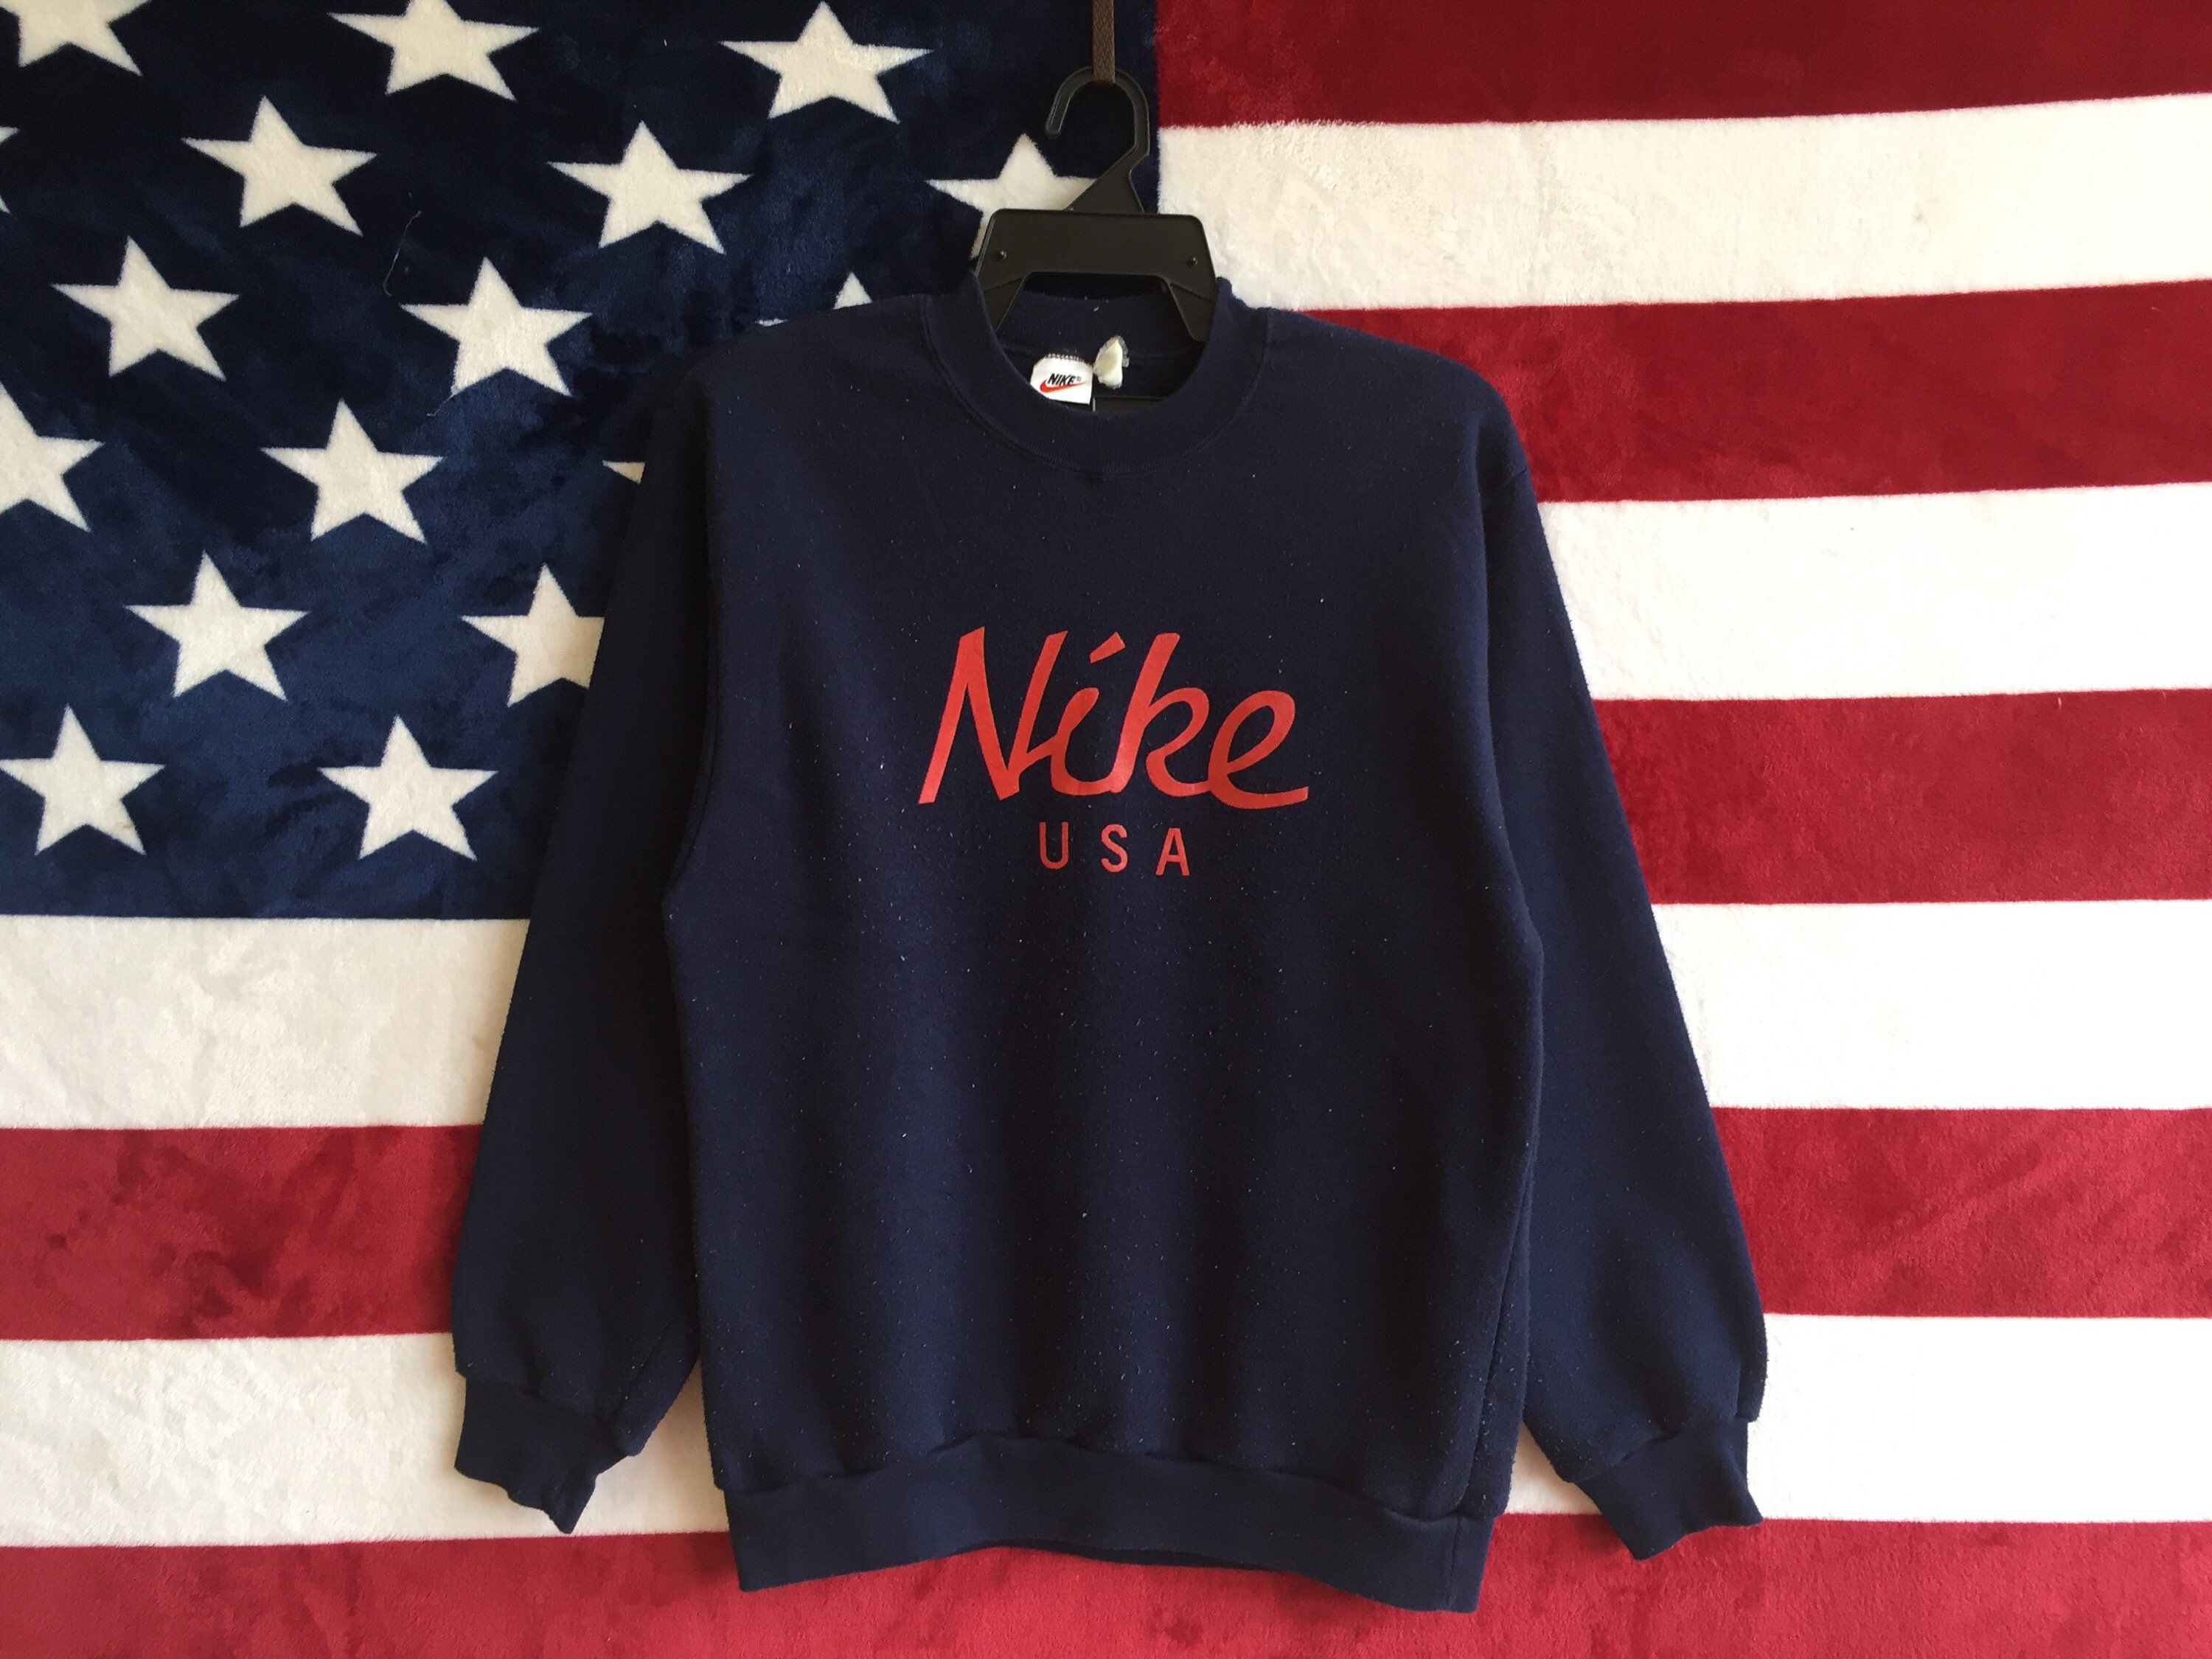 Excited To Share The Latest Addition To My Etsy Shop Vintage 90s Nike Usa Sweatshirt Blue Navy Colour Nike Usa Sweater Pul Usa Sweater Usa Sweatshirt Clothes [ 2250 x 3000 Pixel ]